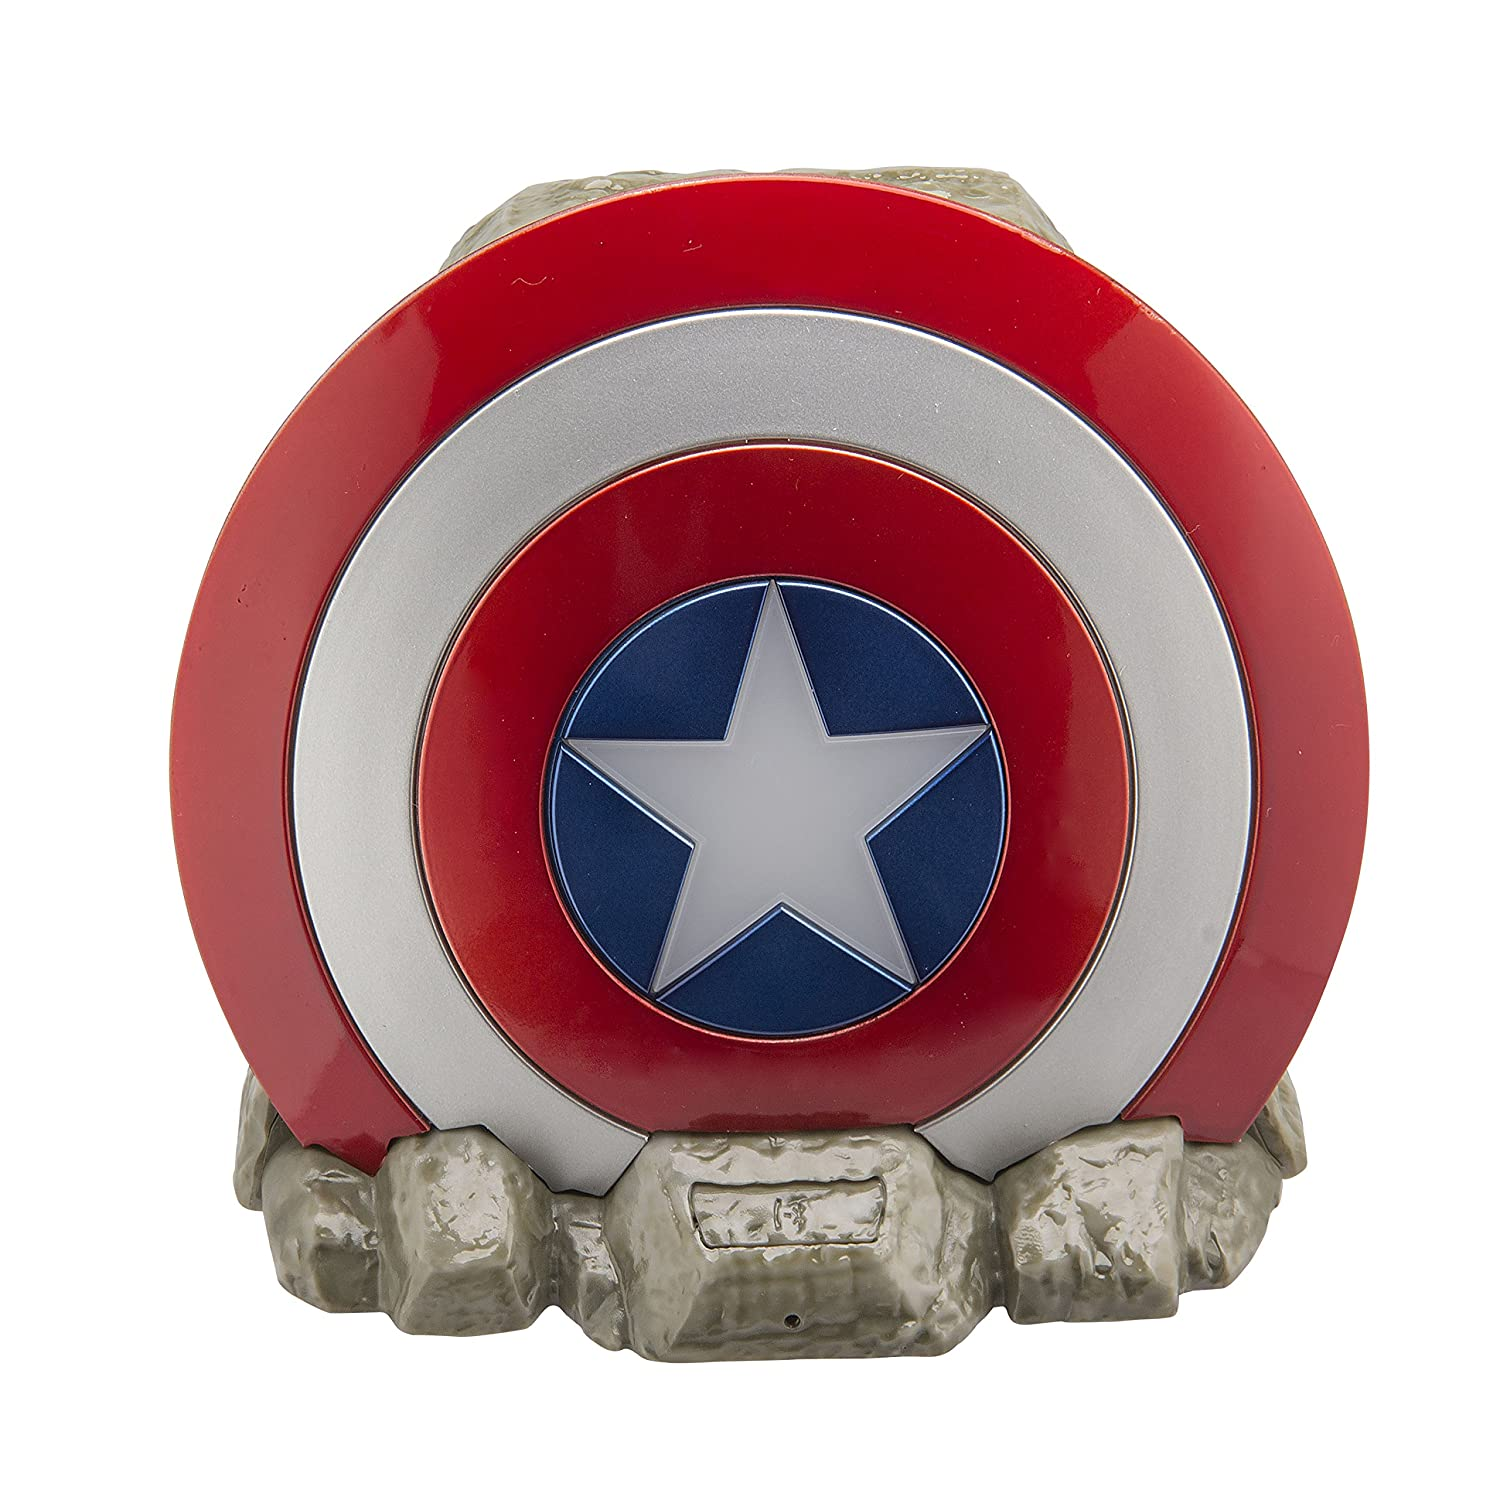 Ekids VI b72ca Marvel Captain America Shield Wireless Bluetooth Altoparlante Portatile Rosso/Bianco Vi-B72CA